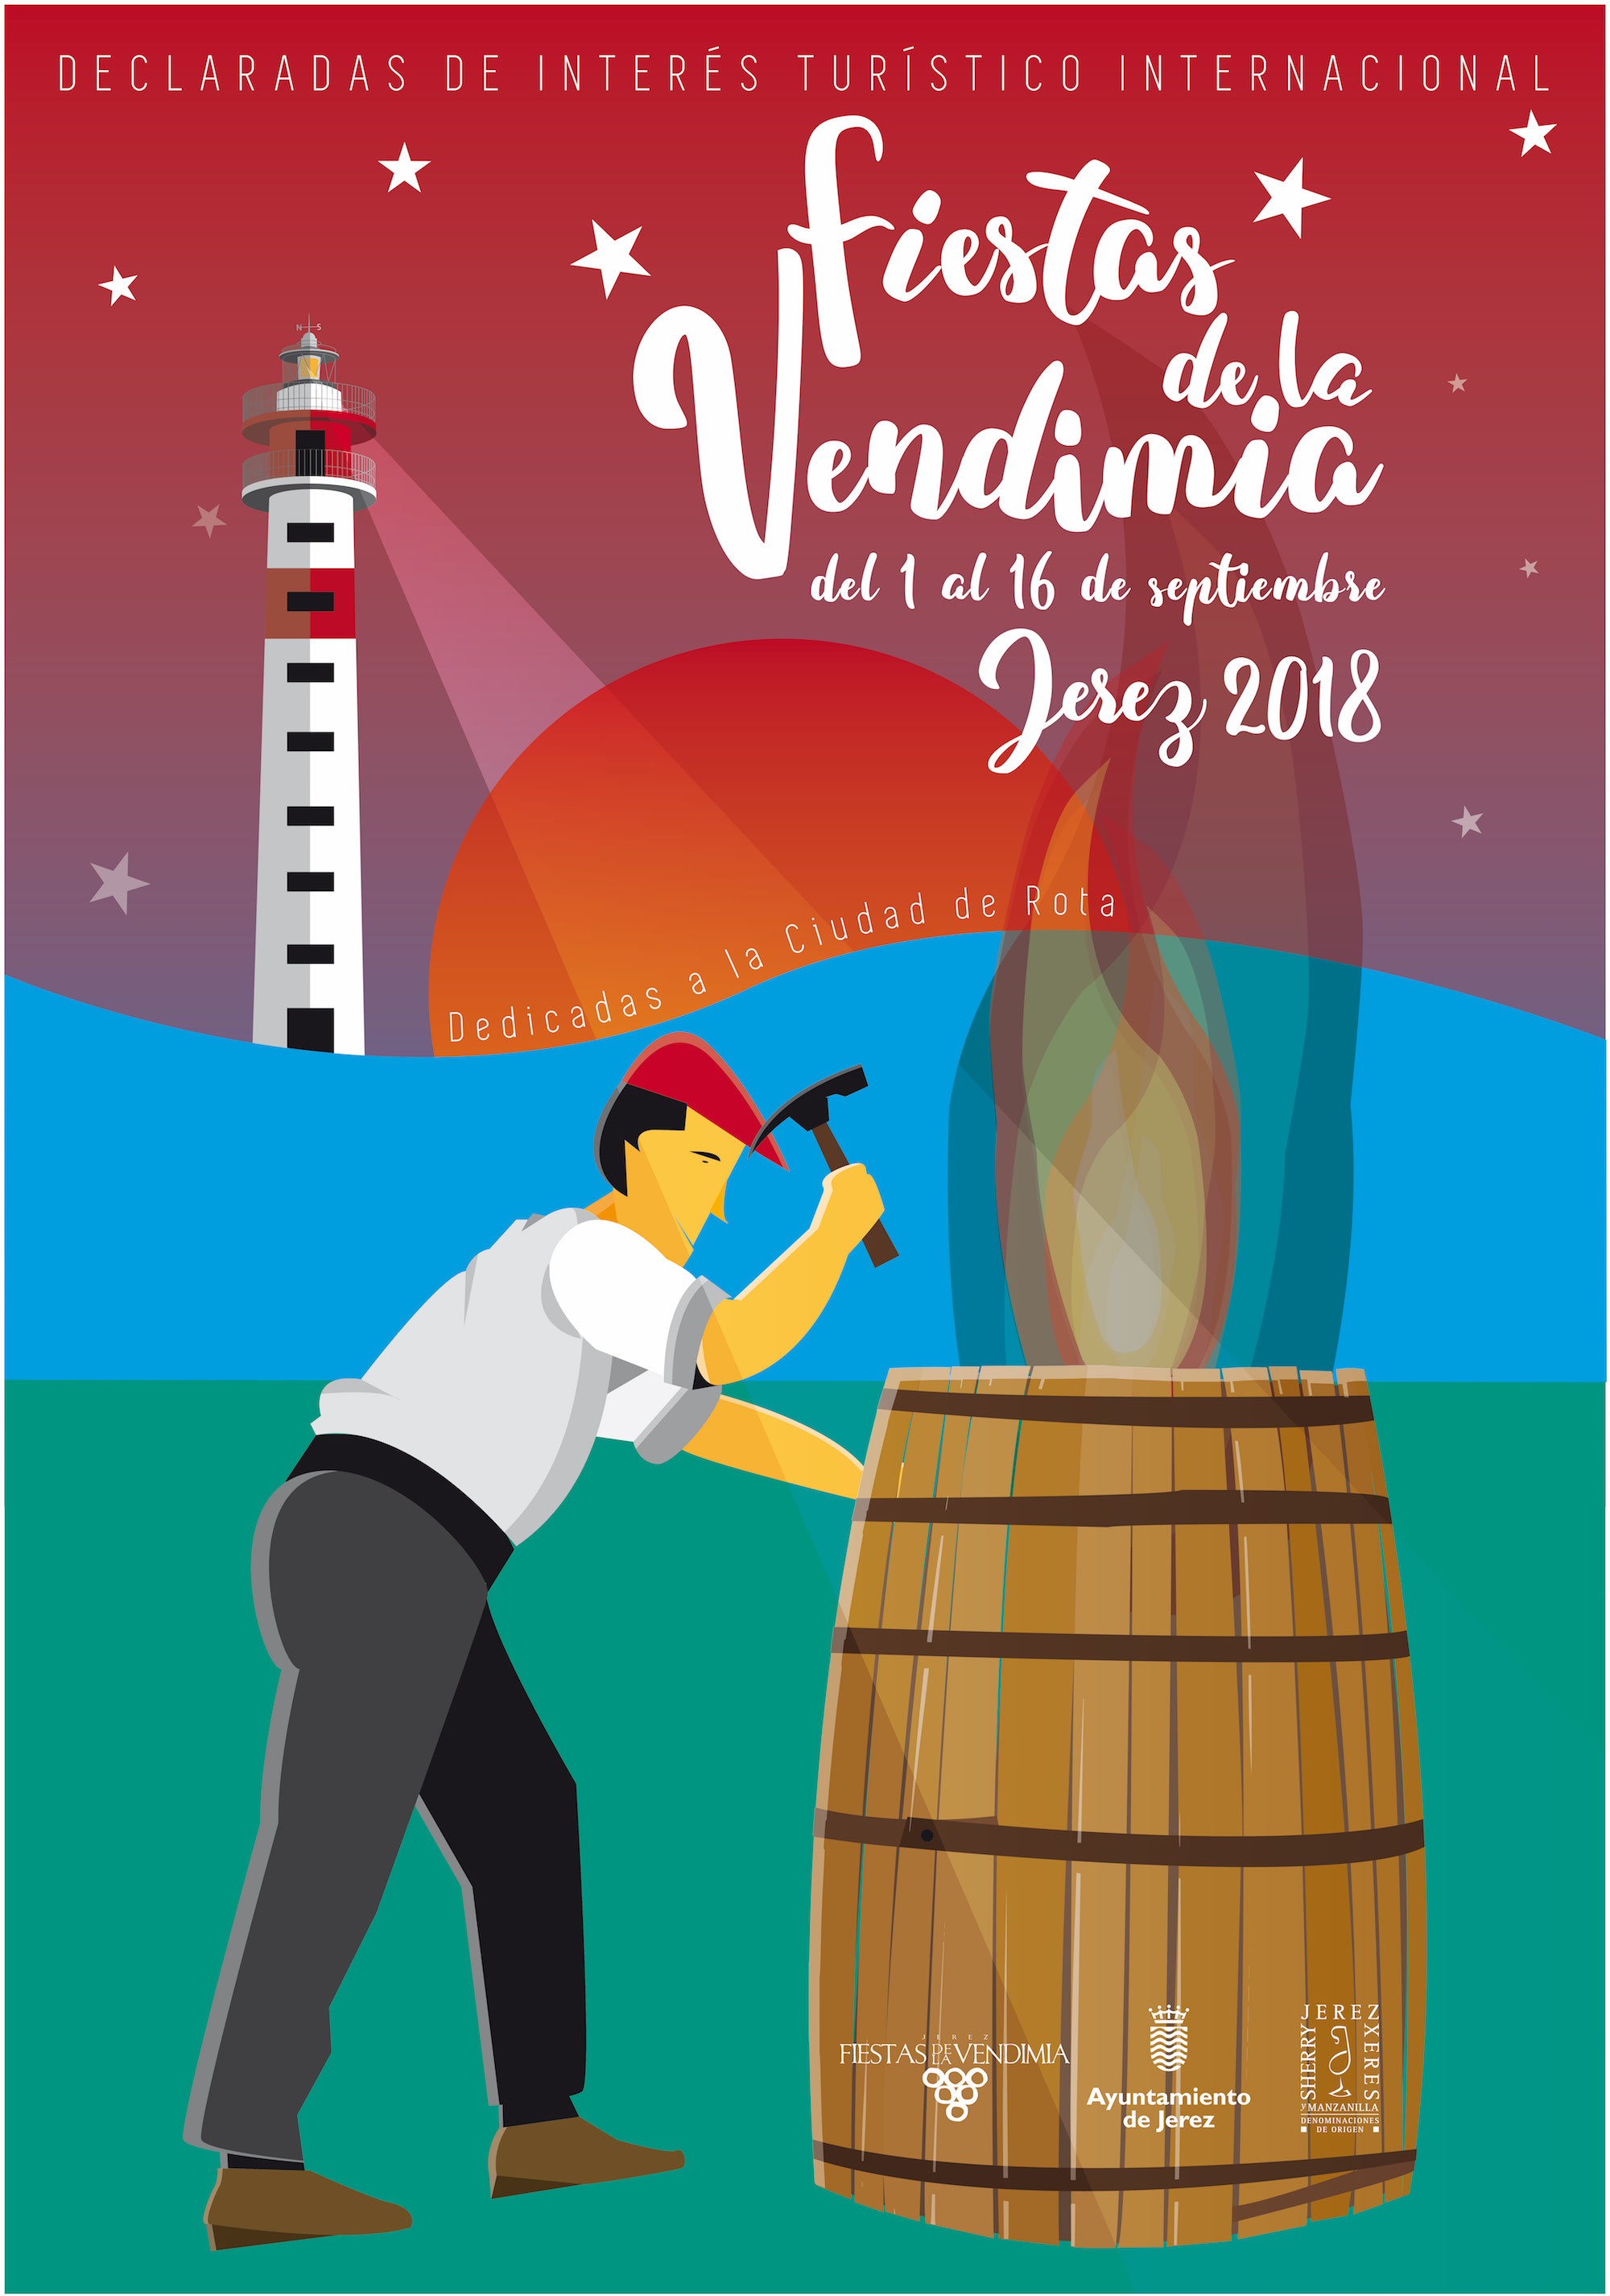 Sherry from the Wood - 2018 is themed on the artisan sherry barrel makers of Jerez